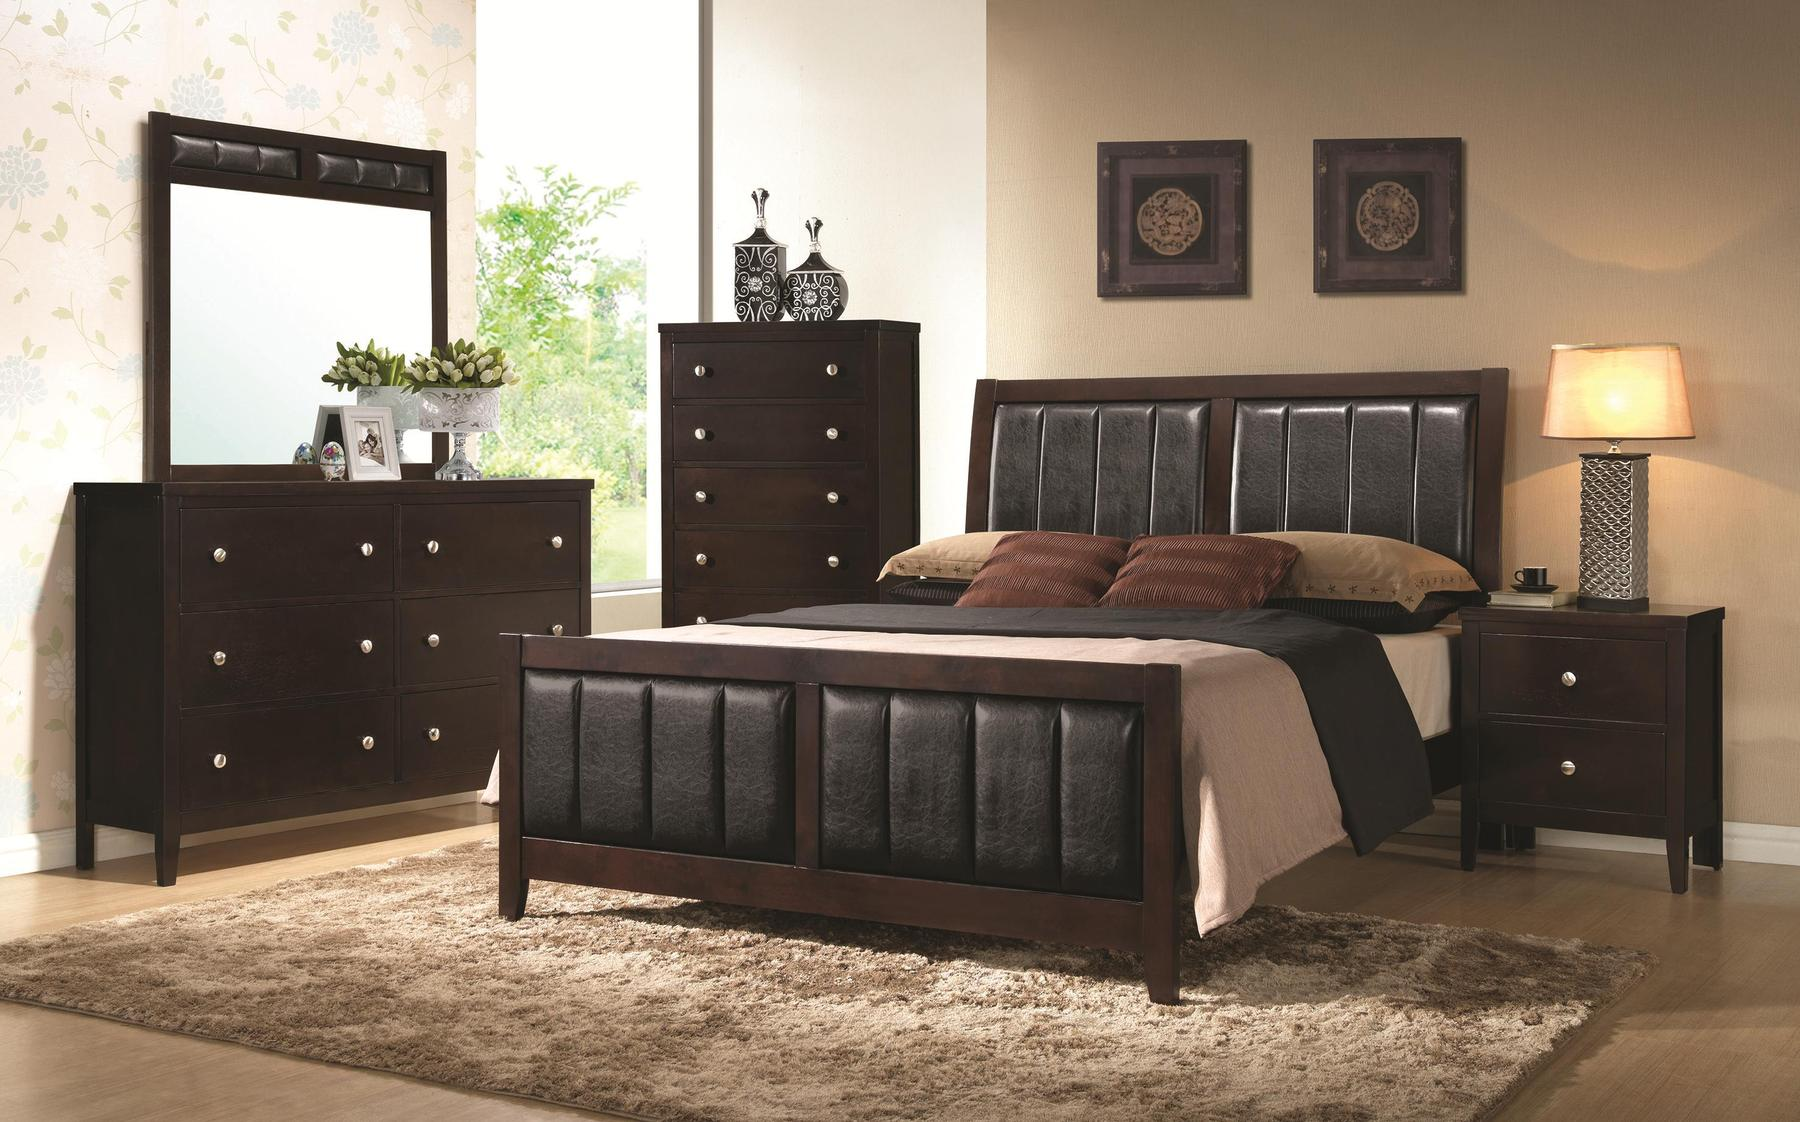 Carlton Collection Queen Bedroom Set